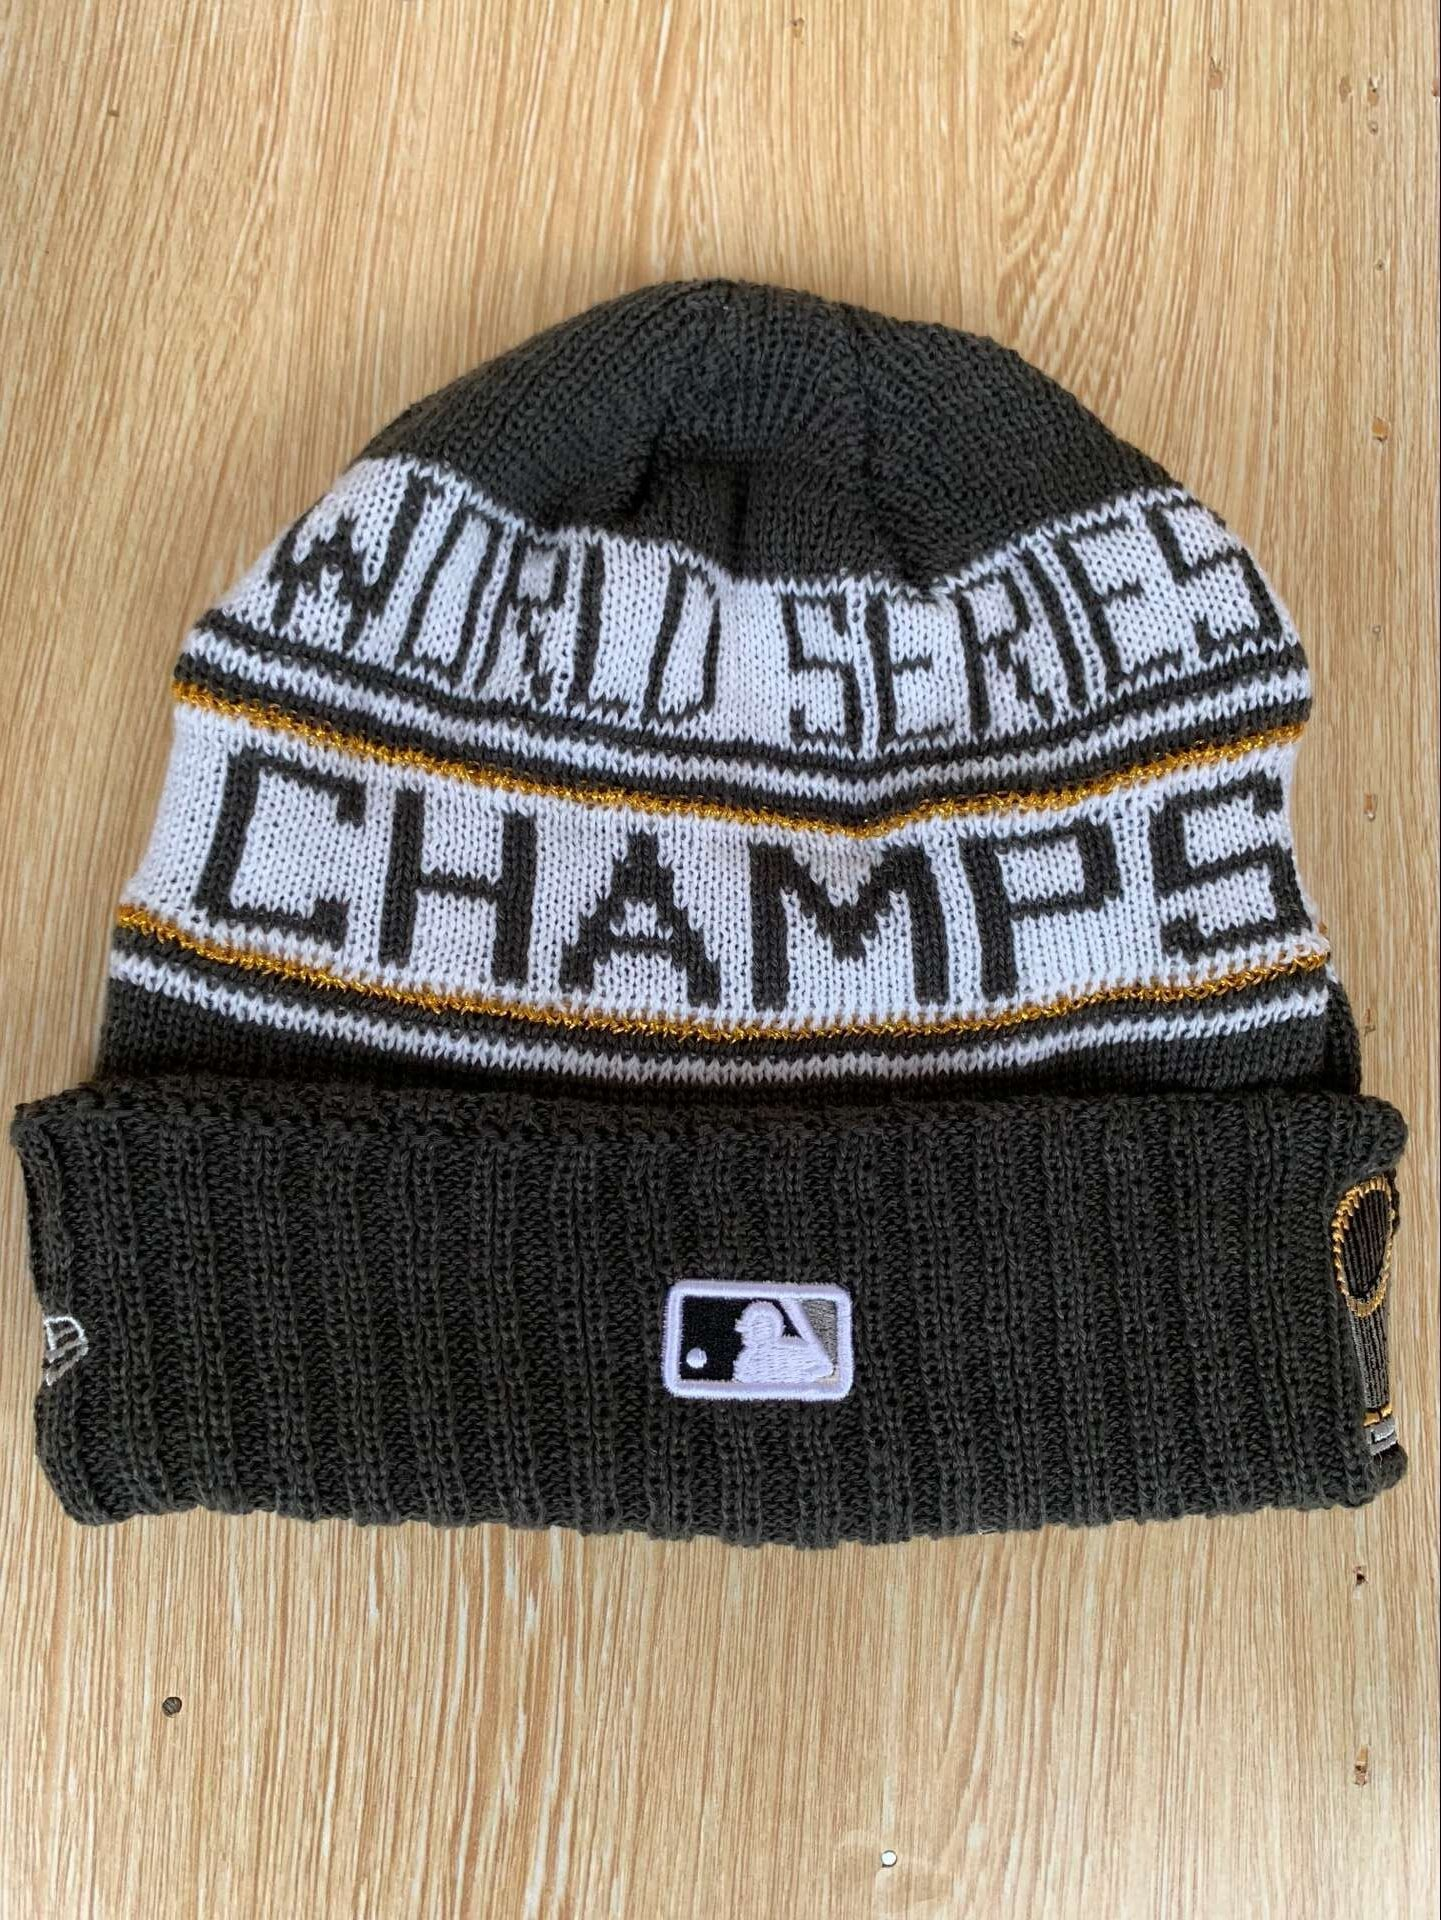 Red Sox 2018 World Series Champions Knit Hat YD